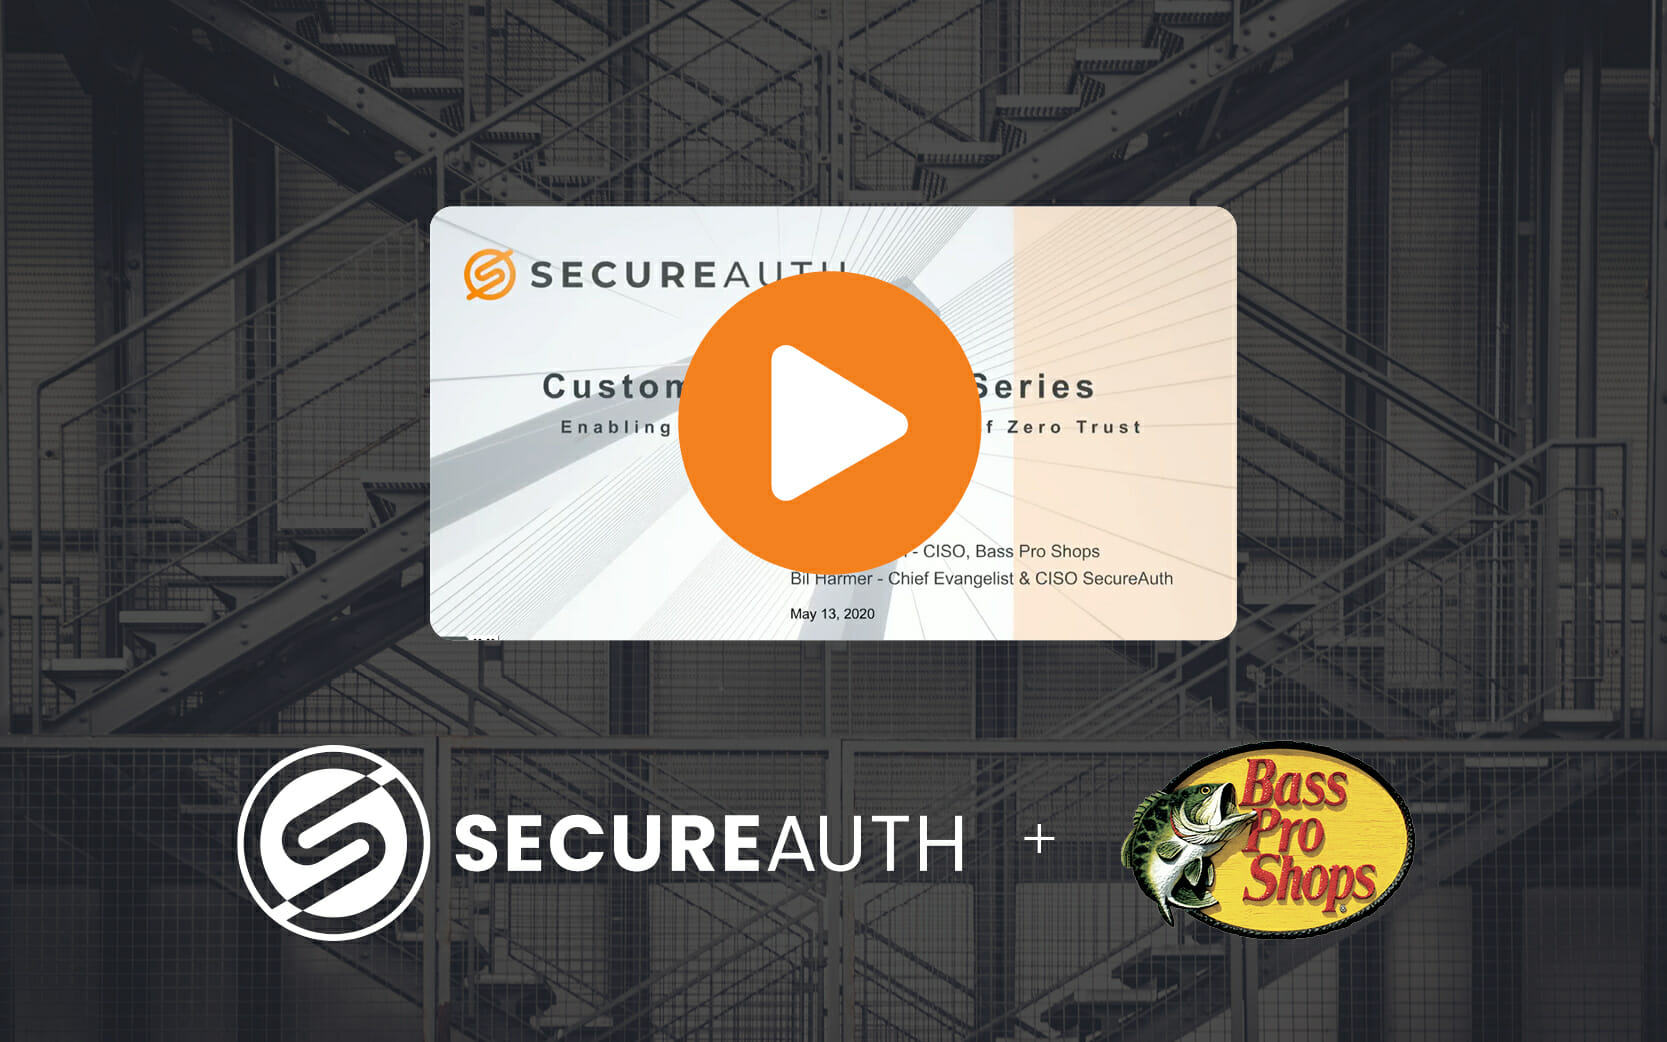 SecureAuth Customer and Identity Access Management enabling their users in an era of zero trust